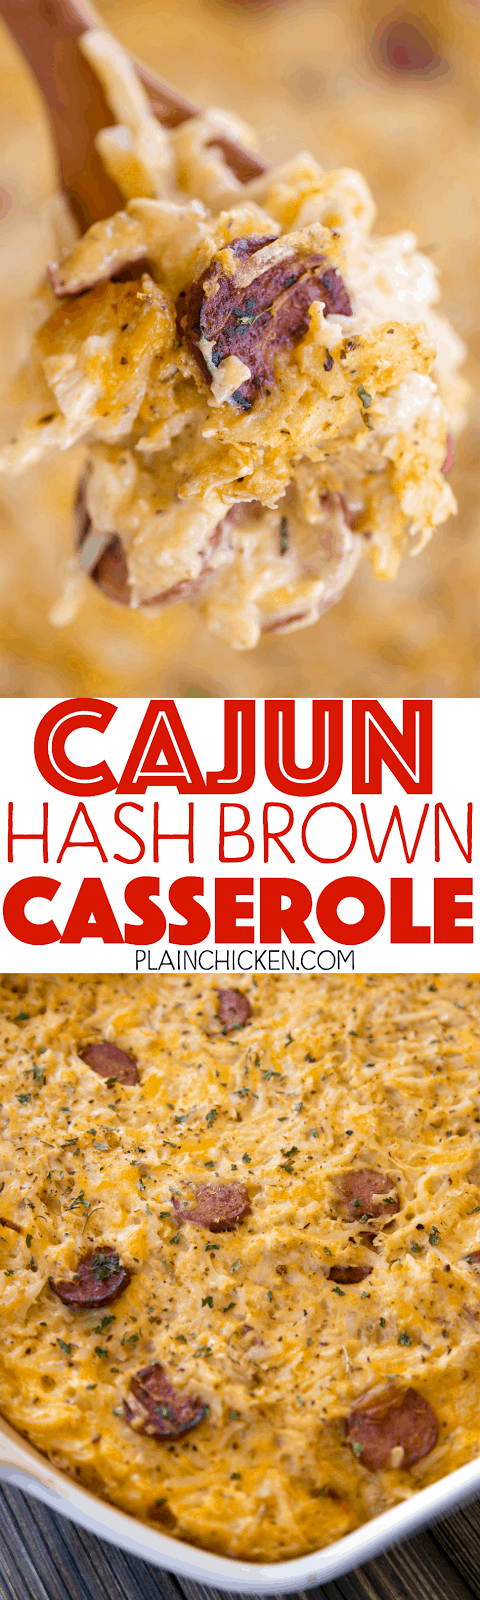 Cajun Hash Brown Casserole - cheesy hash brown casserole loaded with chicken and smoked sausage. Seriously DELICIOUS! We ate this three days in a row! OMG! Chicken, smoked sausage, cajun seasoning, cheddar cheese, hash browns, cream of chicken soup and sour cream. This is a family favorite! Makes a great freezer meal!